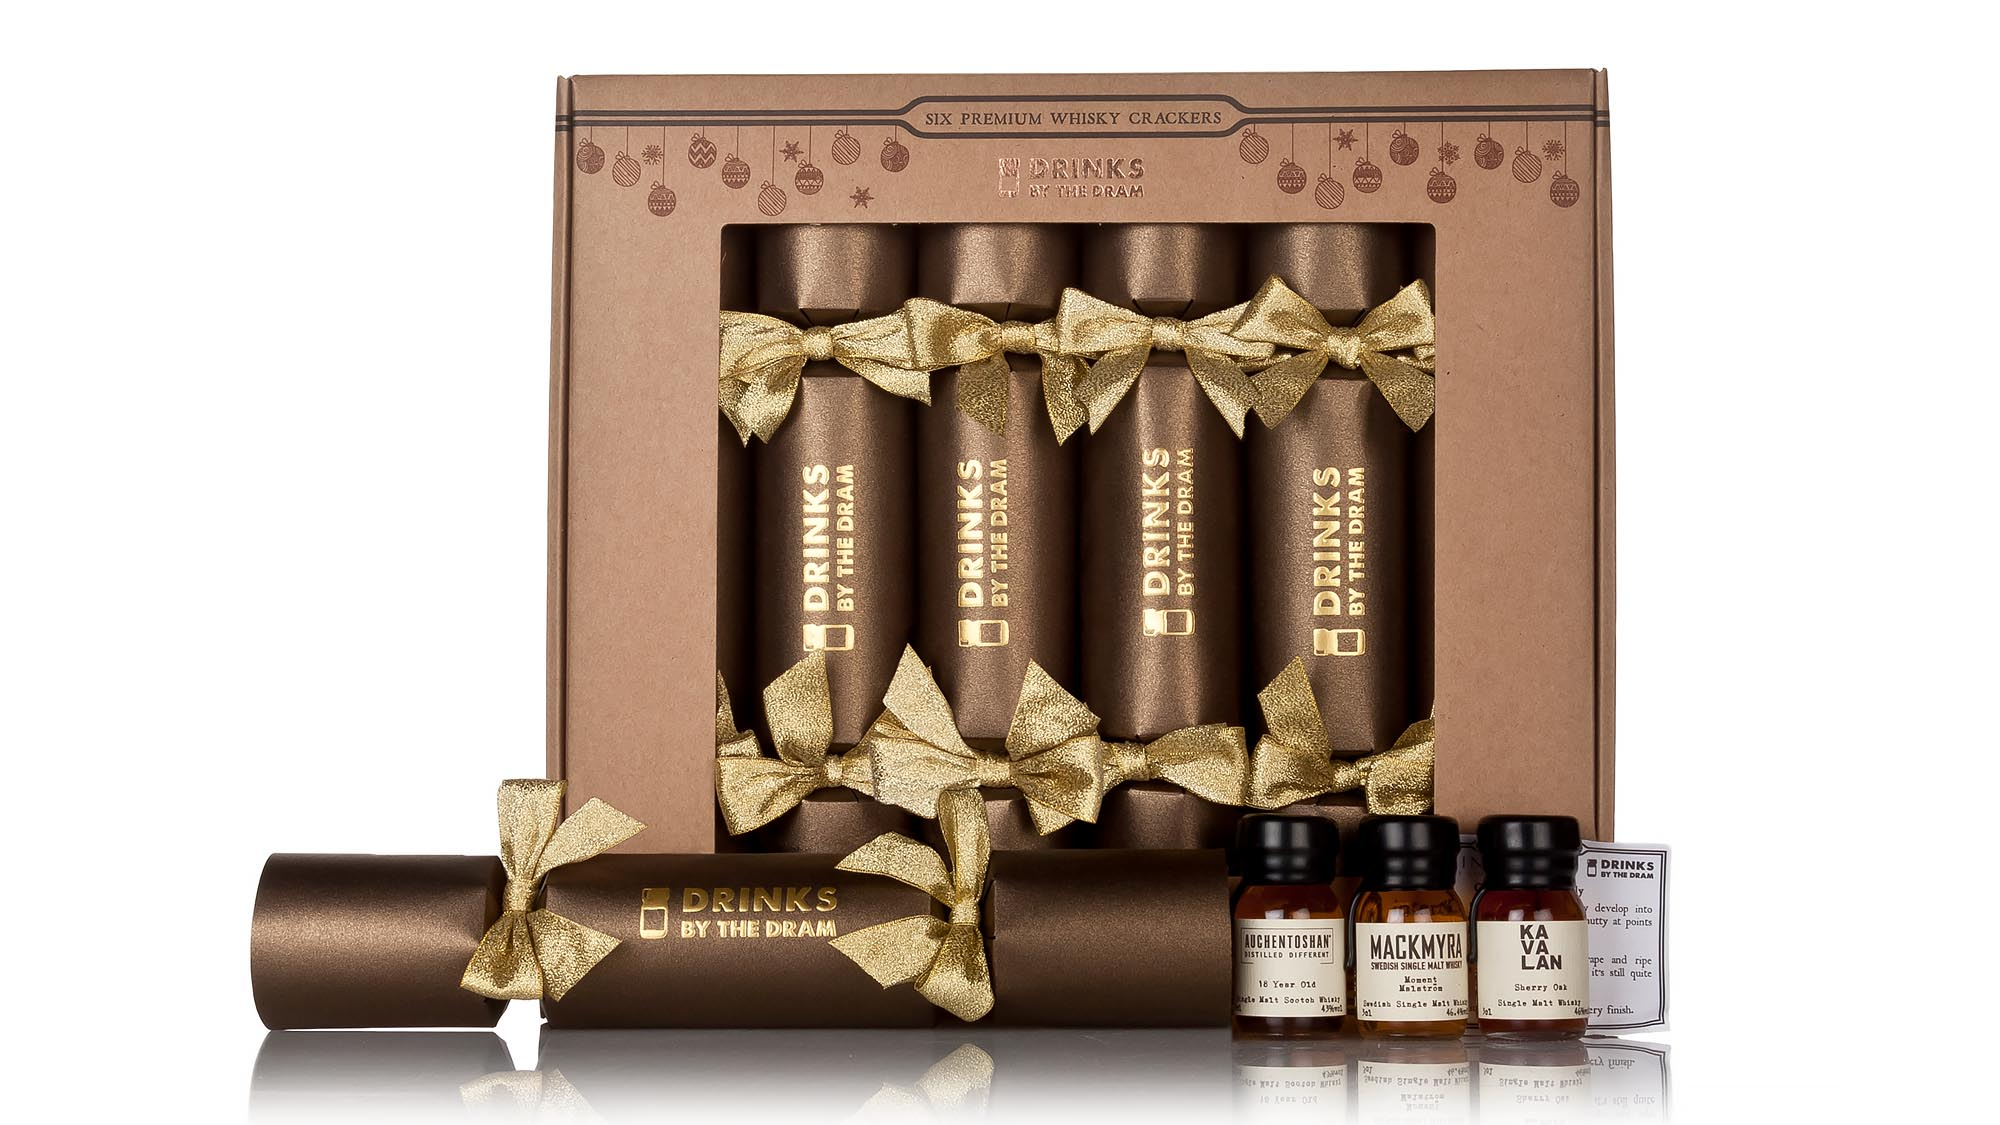 Best christmas crackers make your holiday season go with a bang whisky has long been a popular tipple on christmas day and these smart brown and gold crackers are likely to put an extra big smile on your guests faces solutioingenieria Choice Image